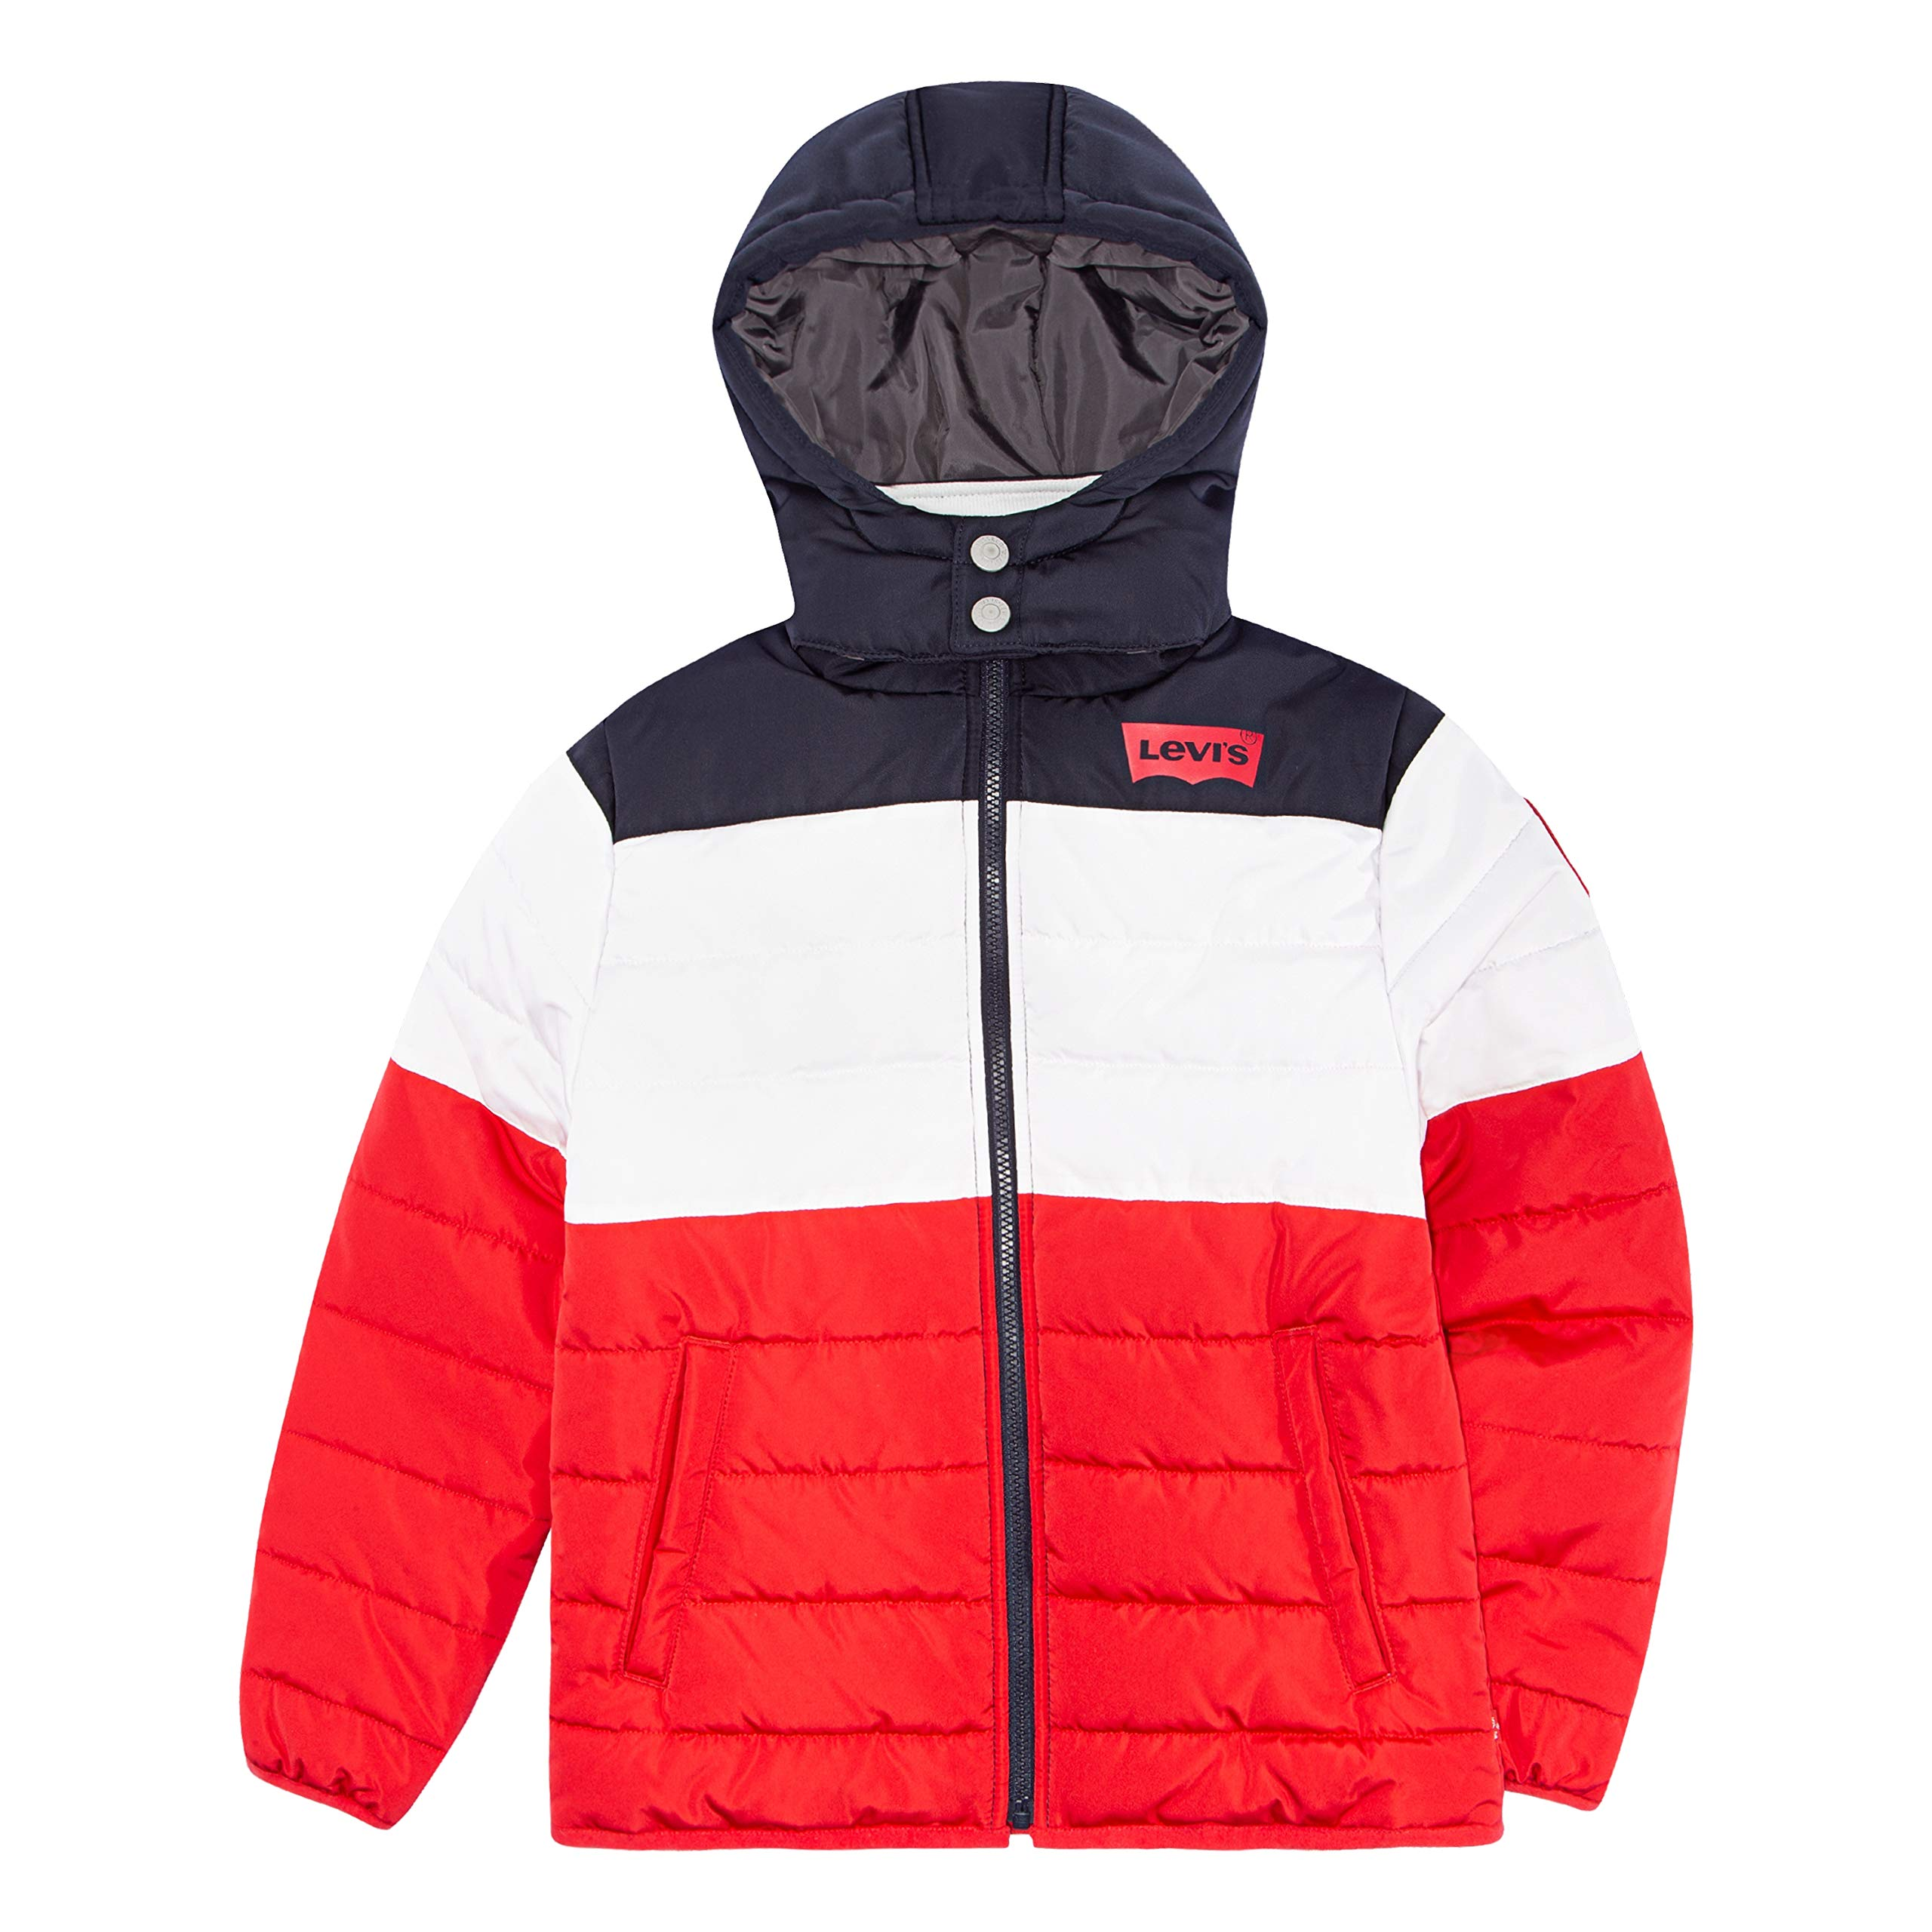 Levi's Big Boys' Puffer Jacket, White/Red/Navy, L by Levi's